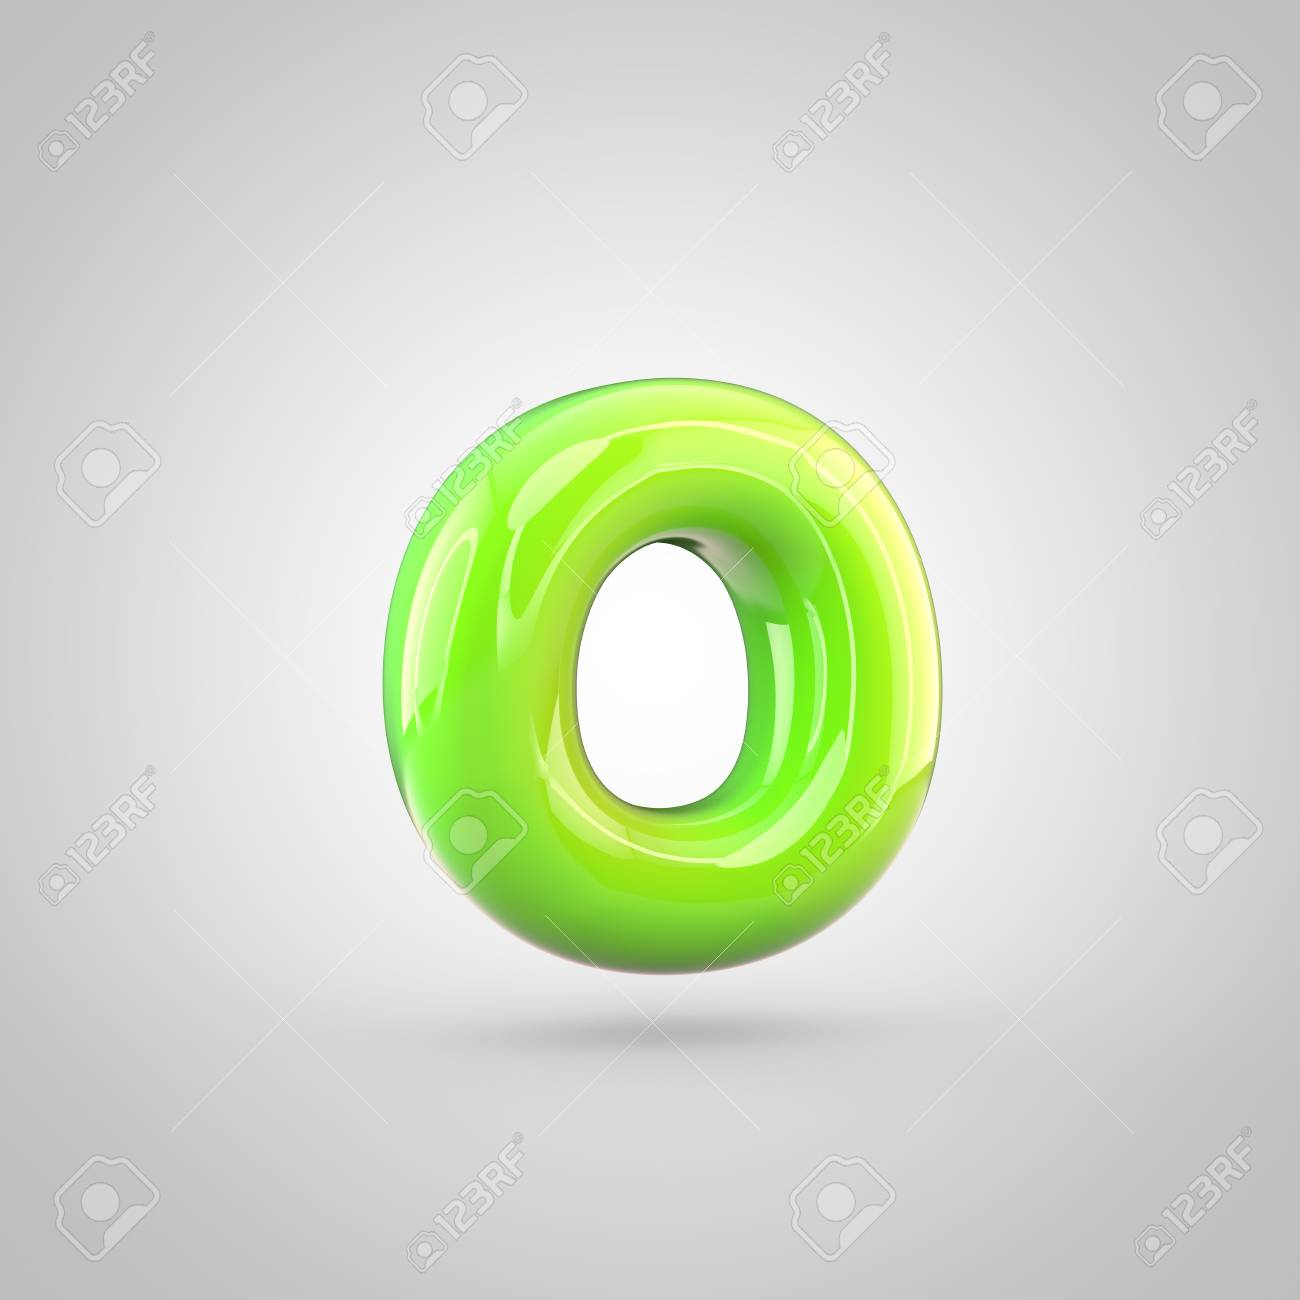 Glossy Lime Paint Alphabet Letter O Lowercase 3d Render Of Bubble